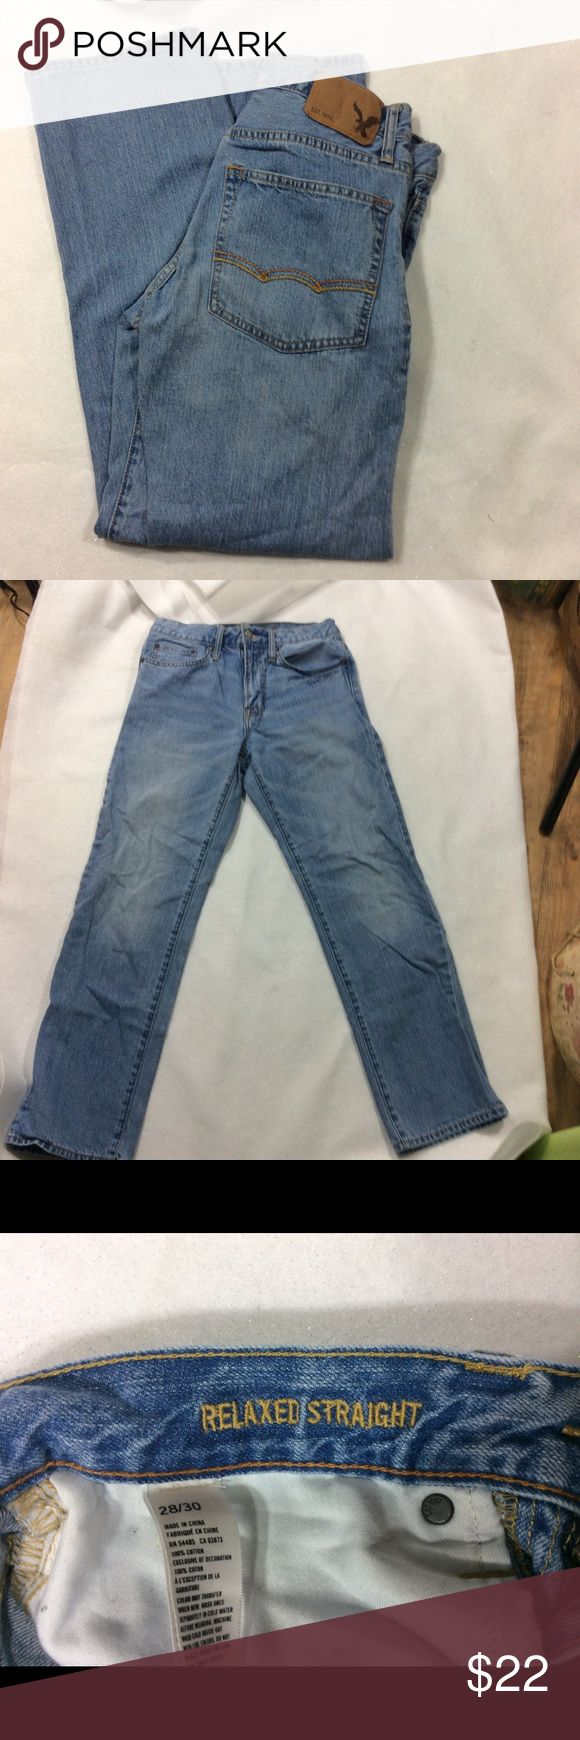 American eagle men's jeans 28/30 American eagle jeans size 28/30 relaxed straight American Eagle Outfitters Jeans Straight